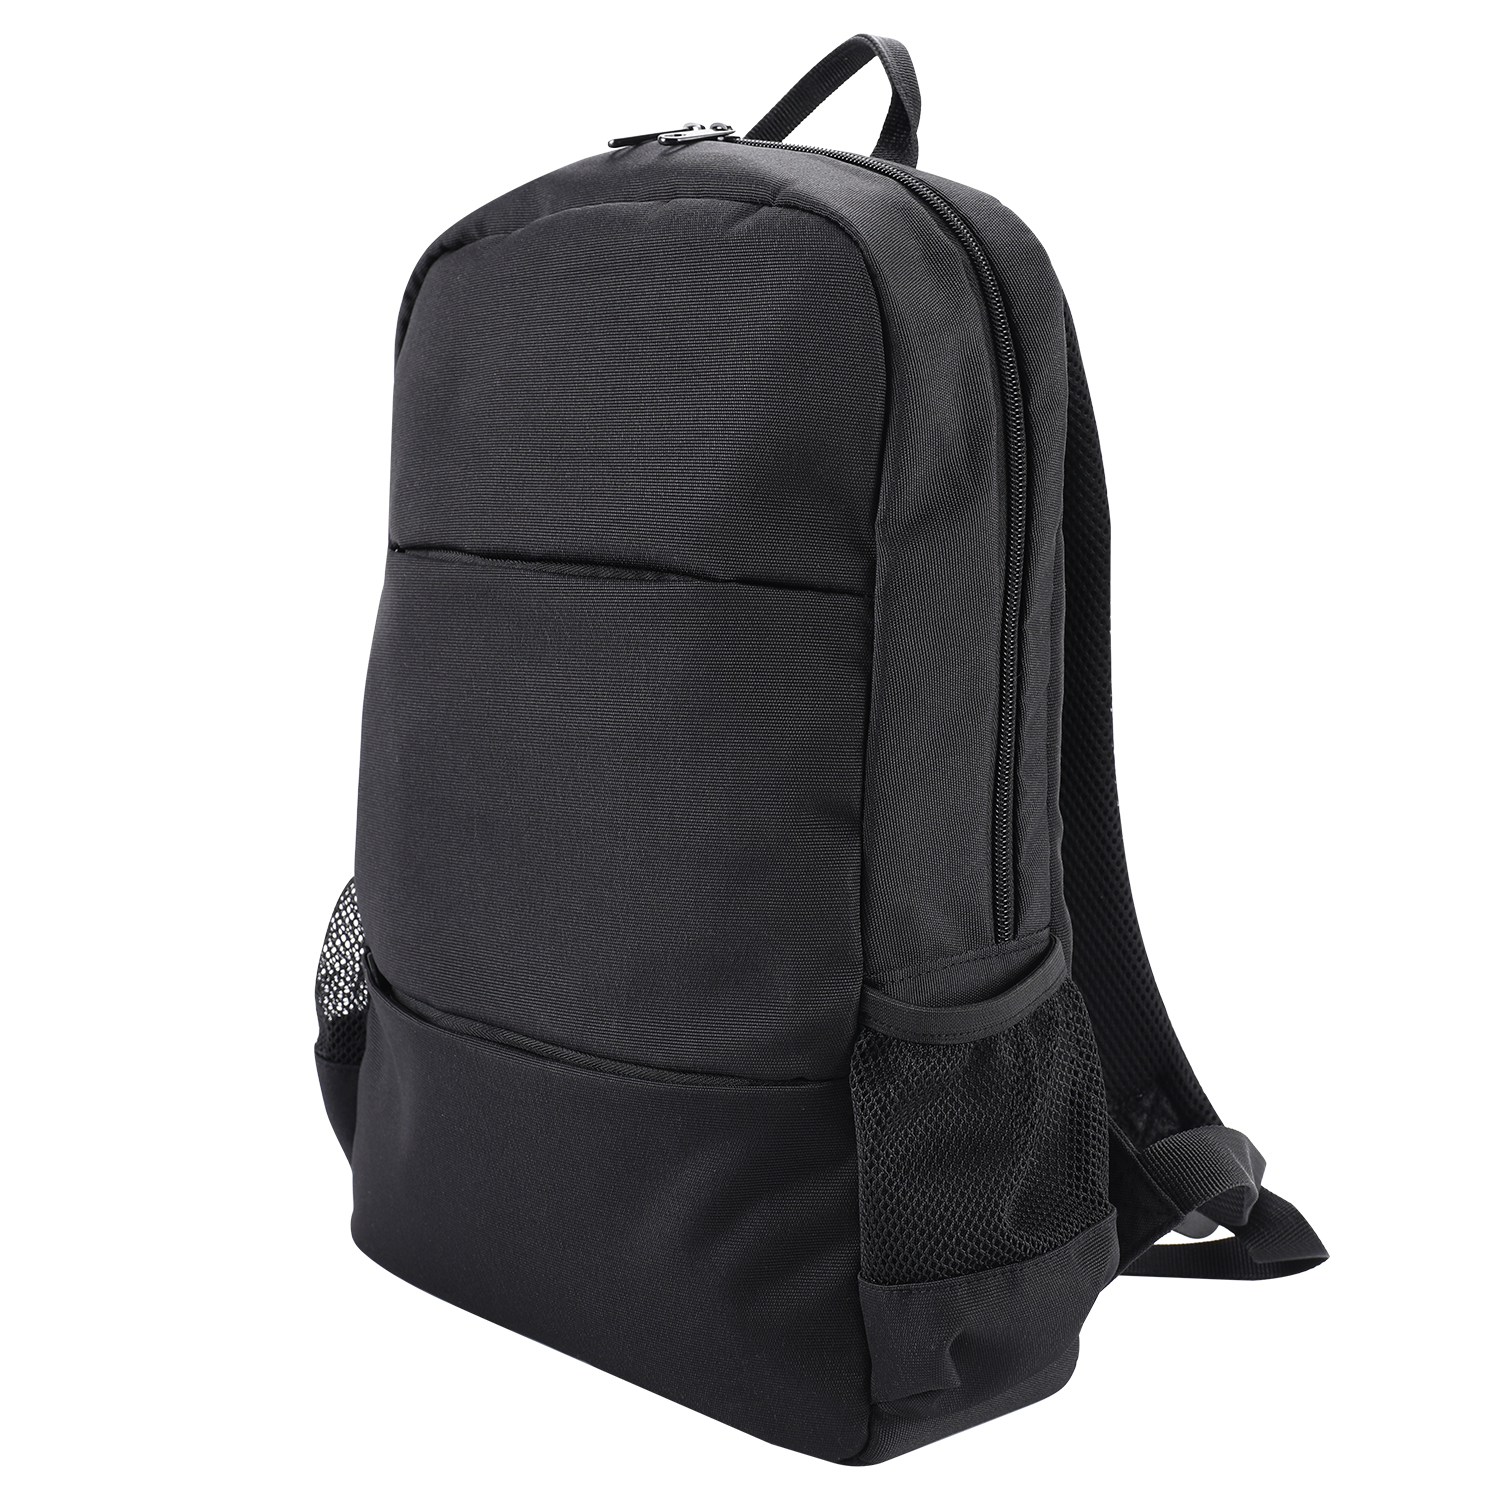 Wholesale amazon hot model unisex black custom logo laptop computer bag Multi-pocket men nylon business travel backpack bag